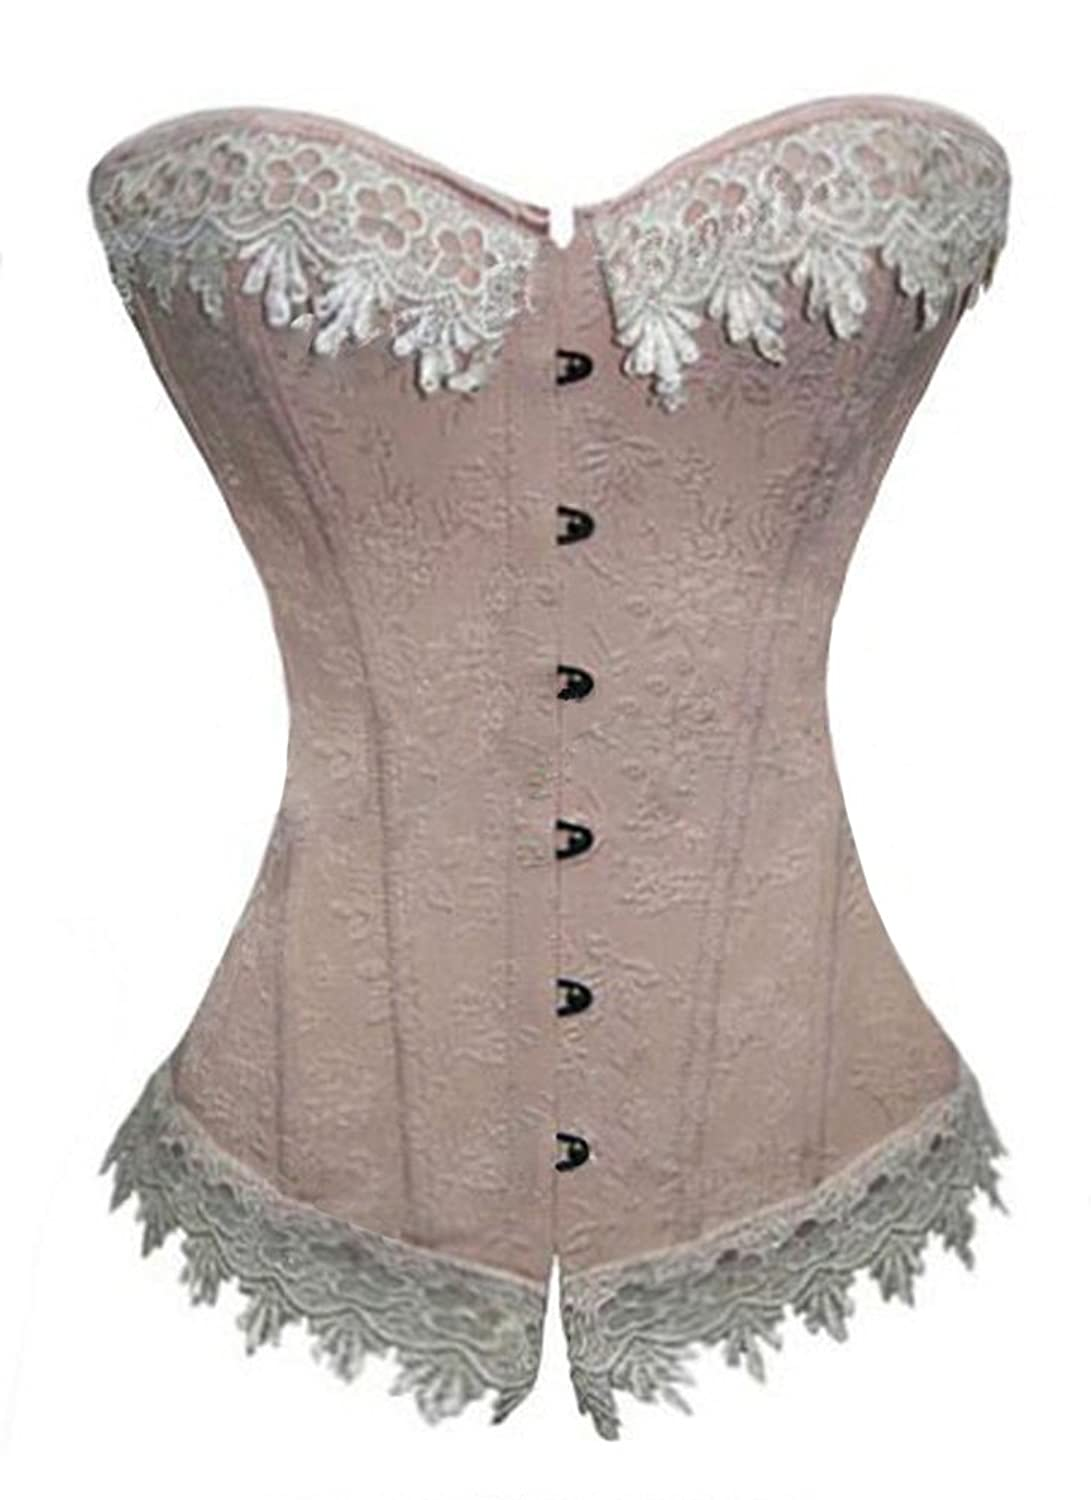 d78c1a21f3a Victorian Corsets – Old Fashioned Corsets   Patterns Luvsecretlingerie  Moulin Rouge Victorian Overbust Fashion Corset Bustier